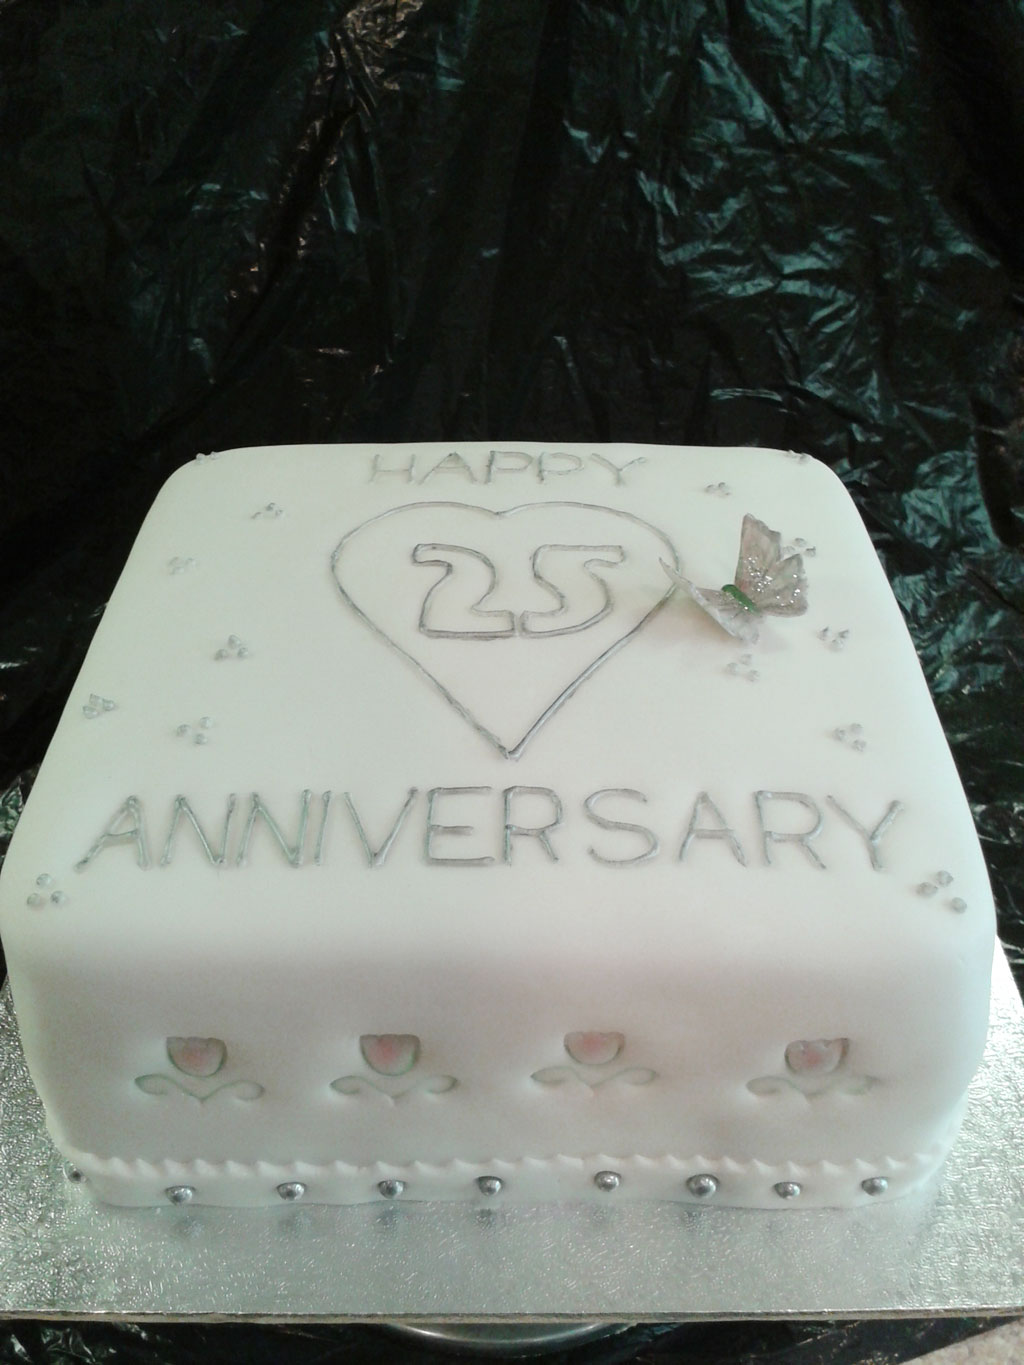 Cake Pic For Wedding Anniversary : 25th Wedding Anniversary Cake Idea To Copy Wedding Cake ...